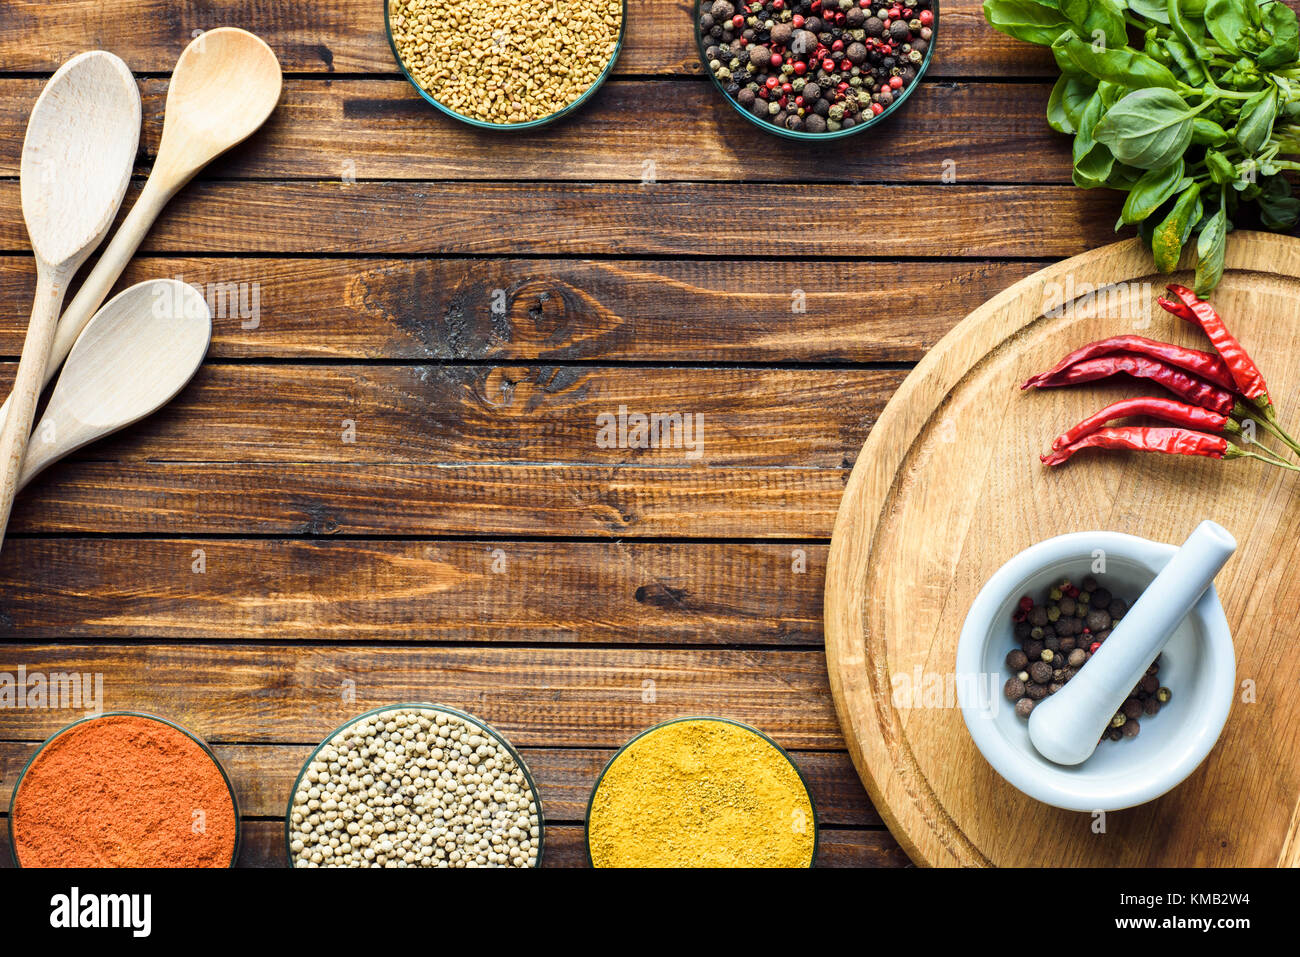 pestle and mortar on wooden board  - Stock Image